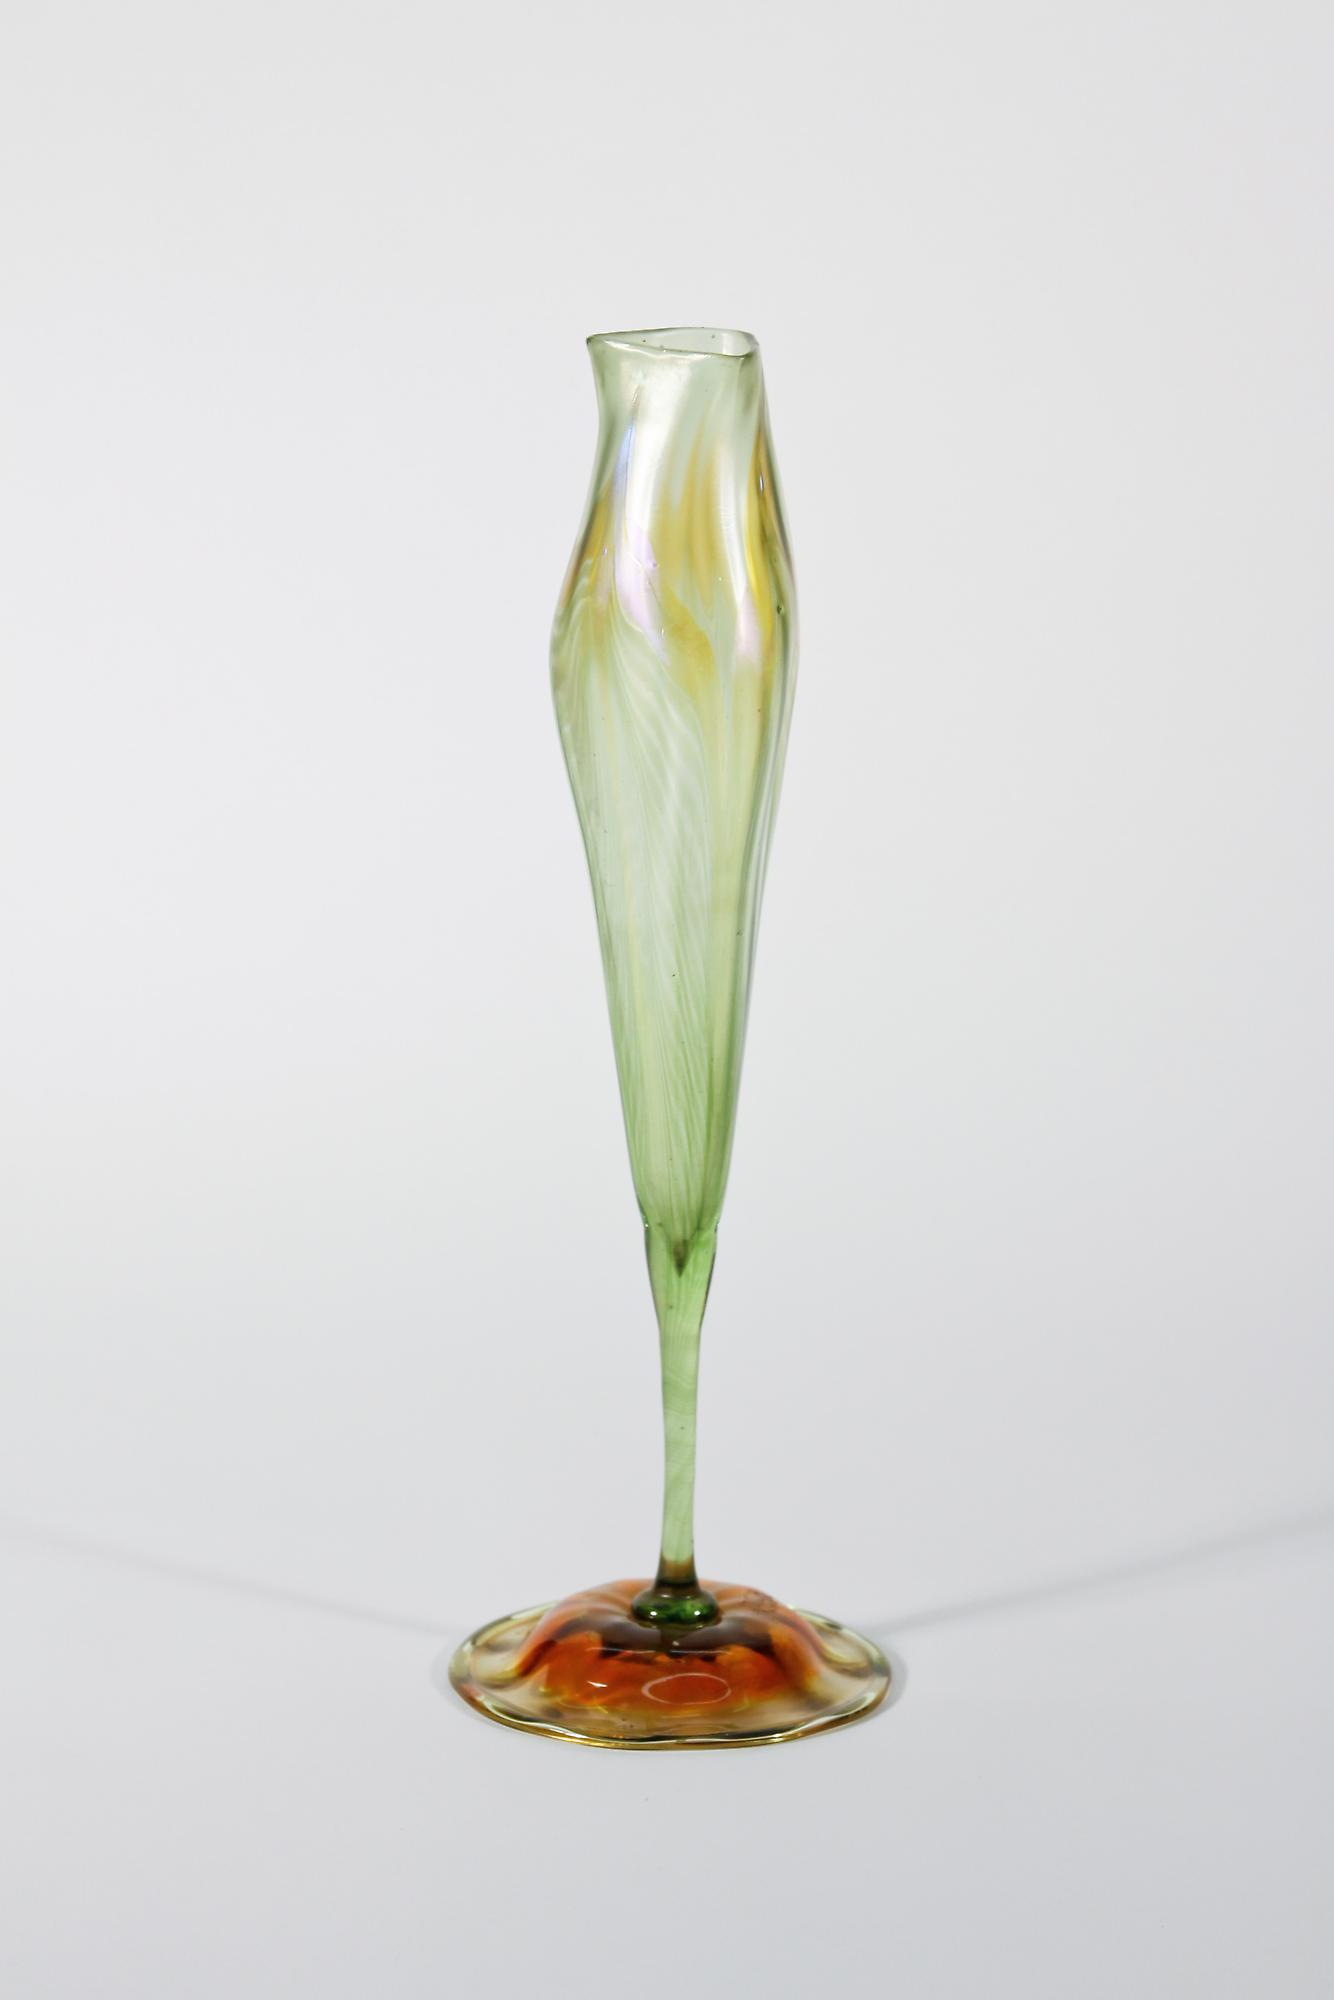 Tiffany Favrile Glass  Calyx Flower Form Vase 1